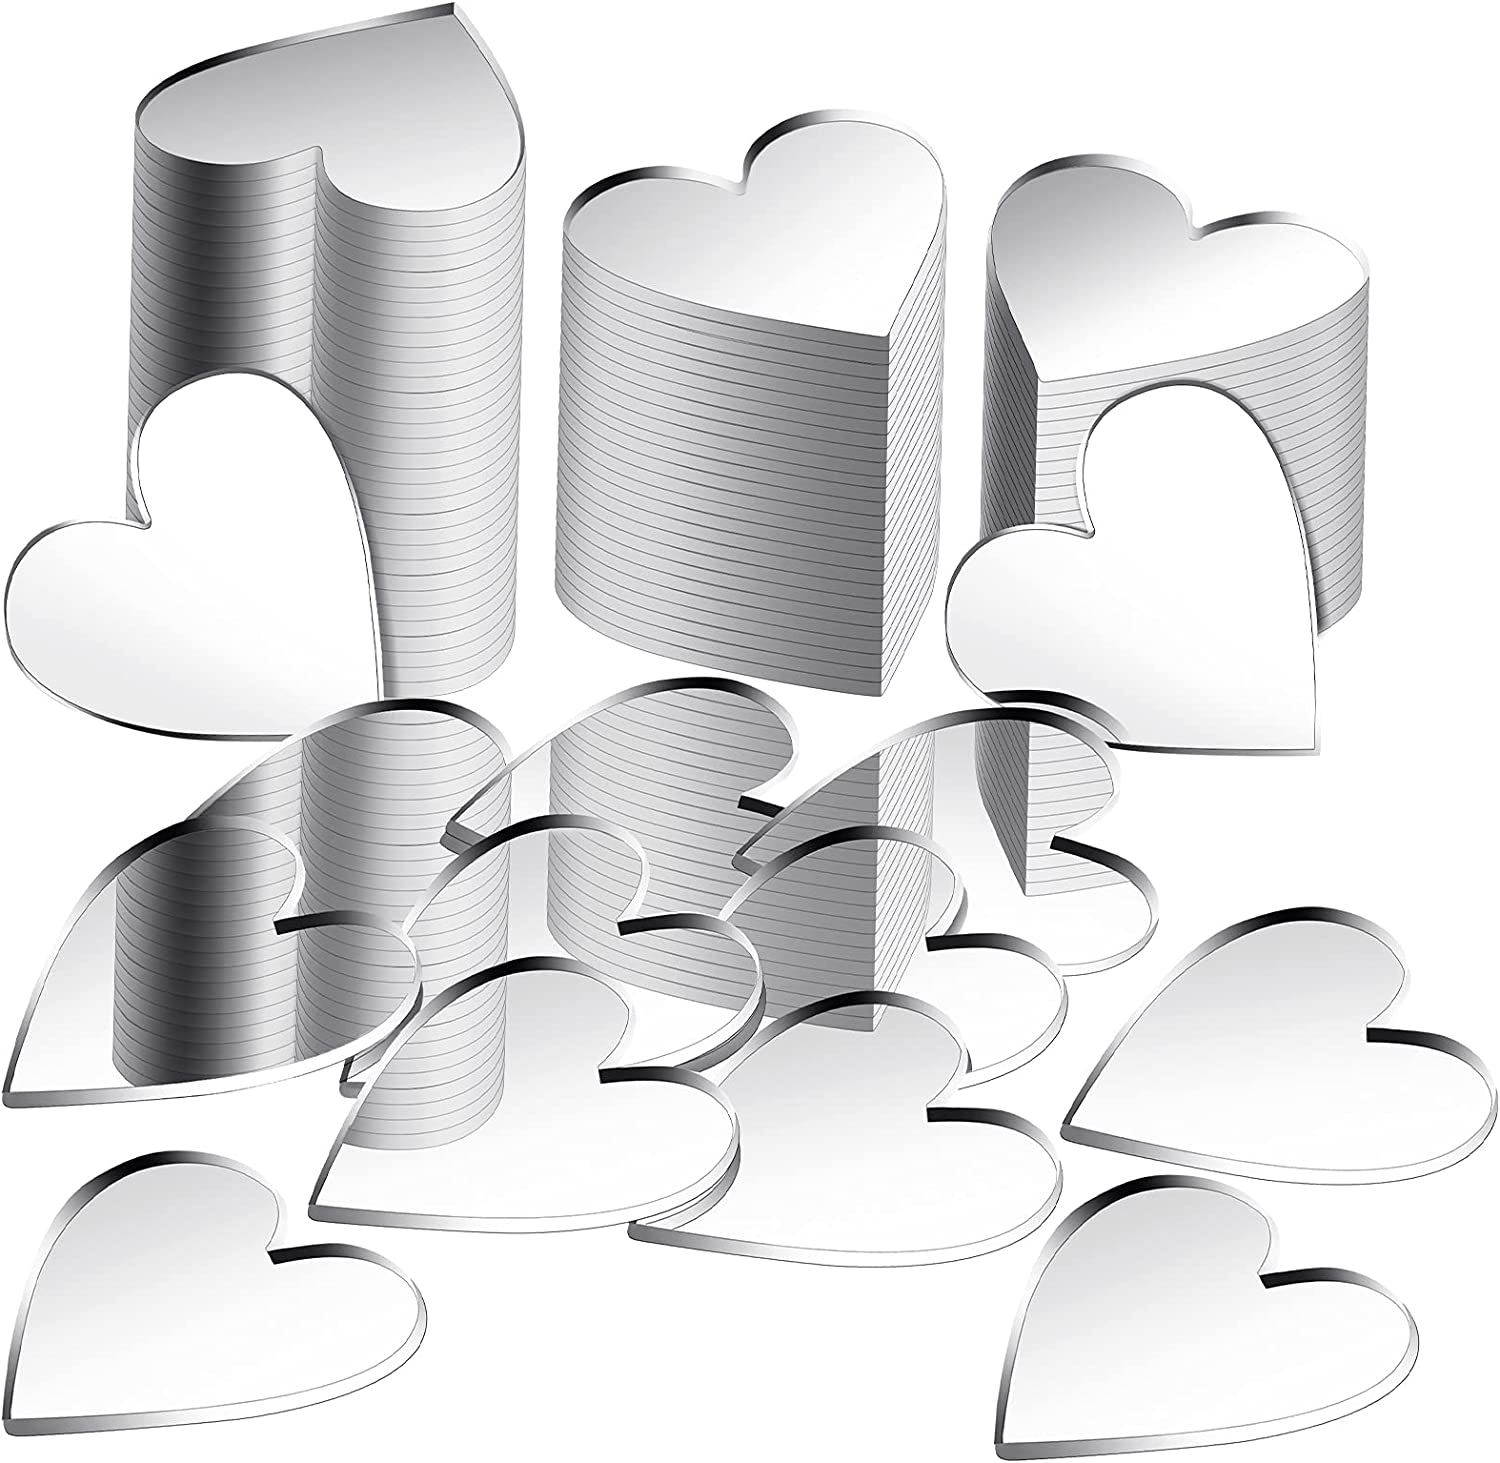 100 Pieces Heart Mirror Mini Size Heart Mirror Tiles Small Heart Mirror, DIY Mosaic Mirror Circles Tiles for Arts and Crafts Projects, Traveling, Framing, Room Home Decor